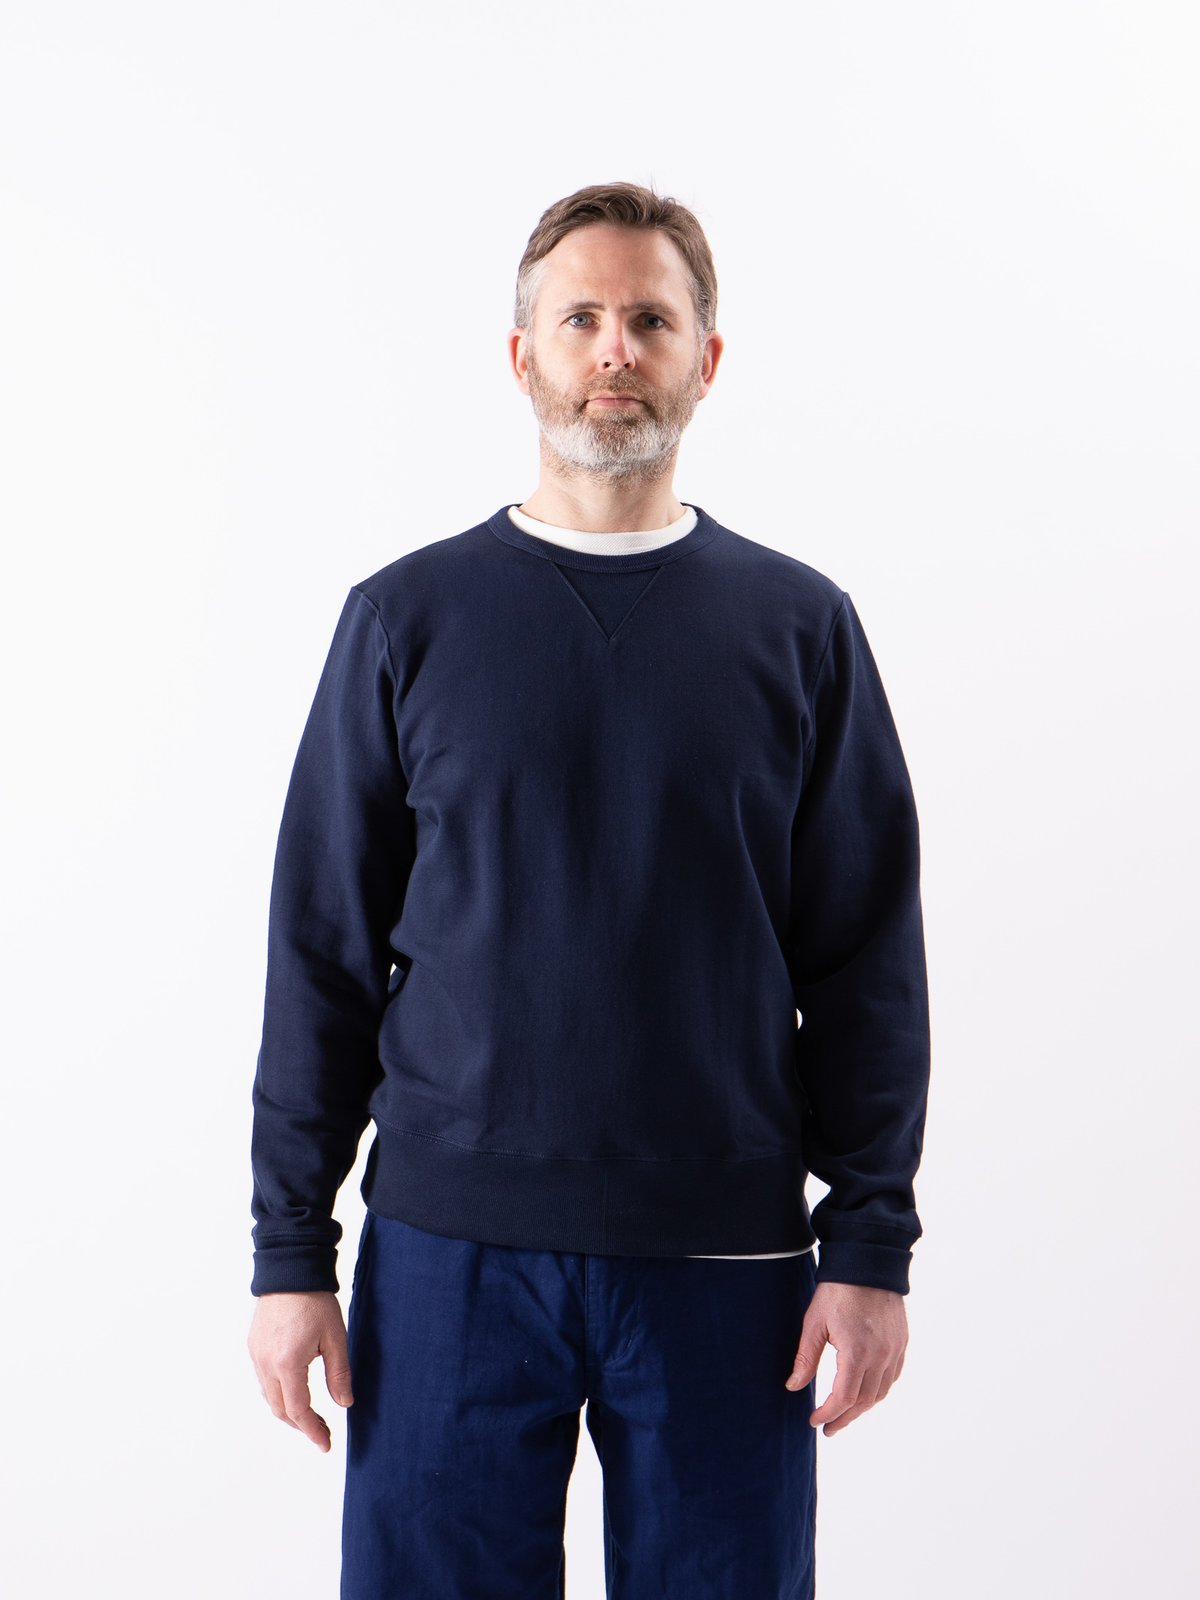 Ink Blue 3S48 Organic Cotton Heavy Sweater - Image 2